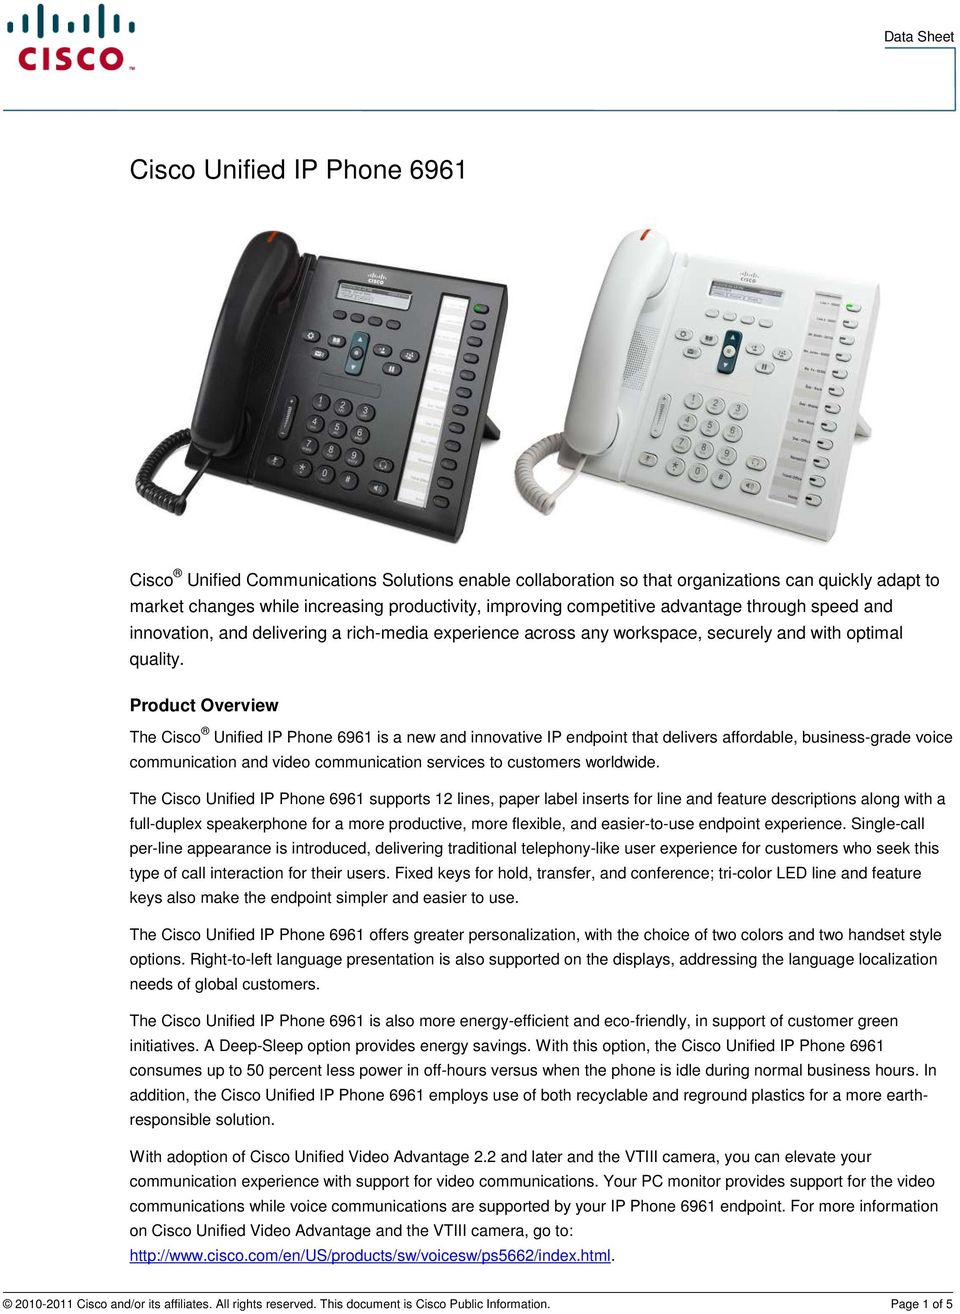 Product Overview The Cisco Unified IP Phone 6961 is a new and innovative IP endpoint that delivers affordable, business-grade voice communication and video communication services to customers